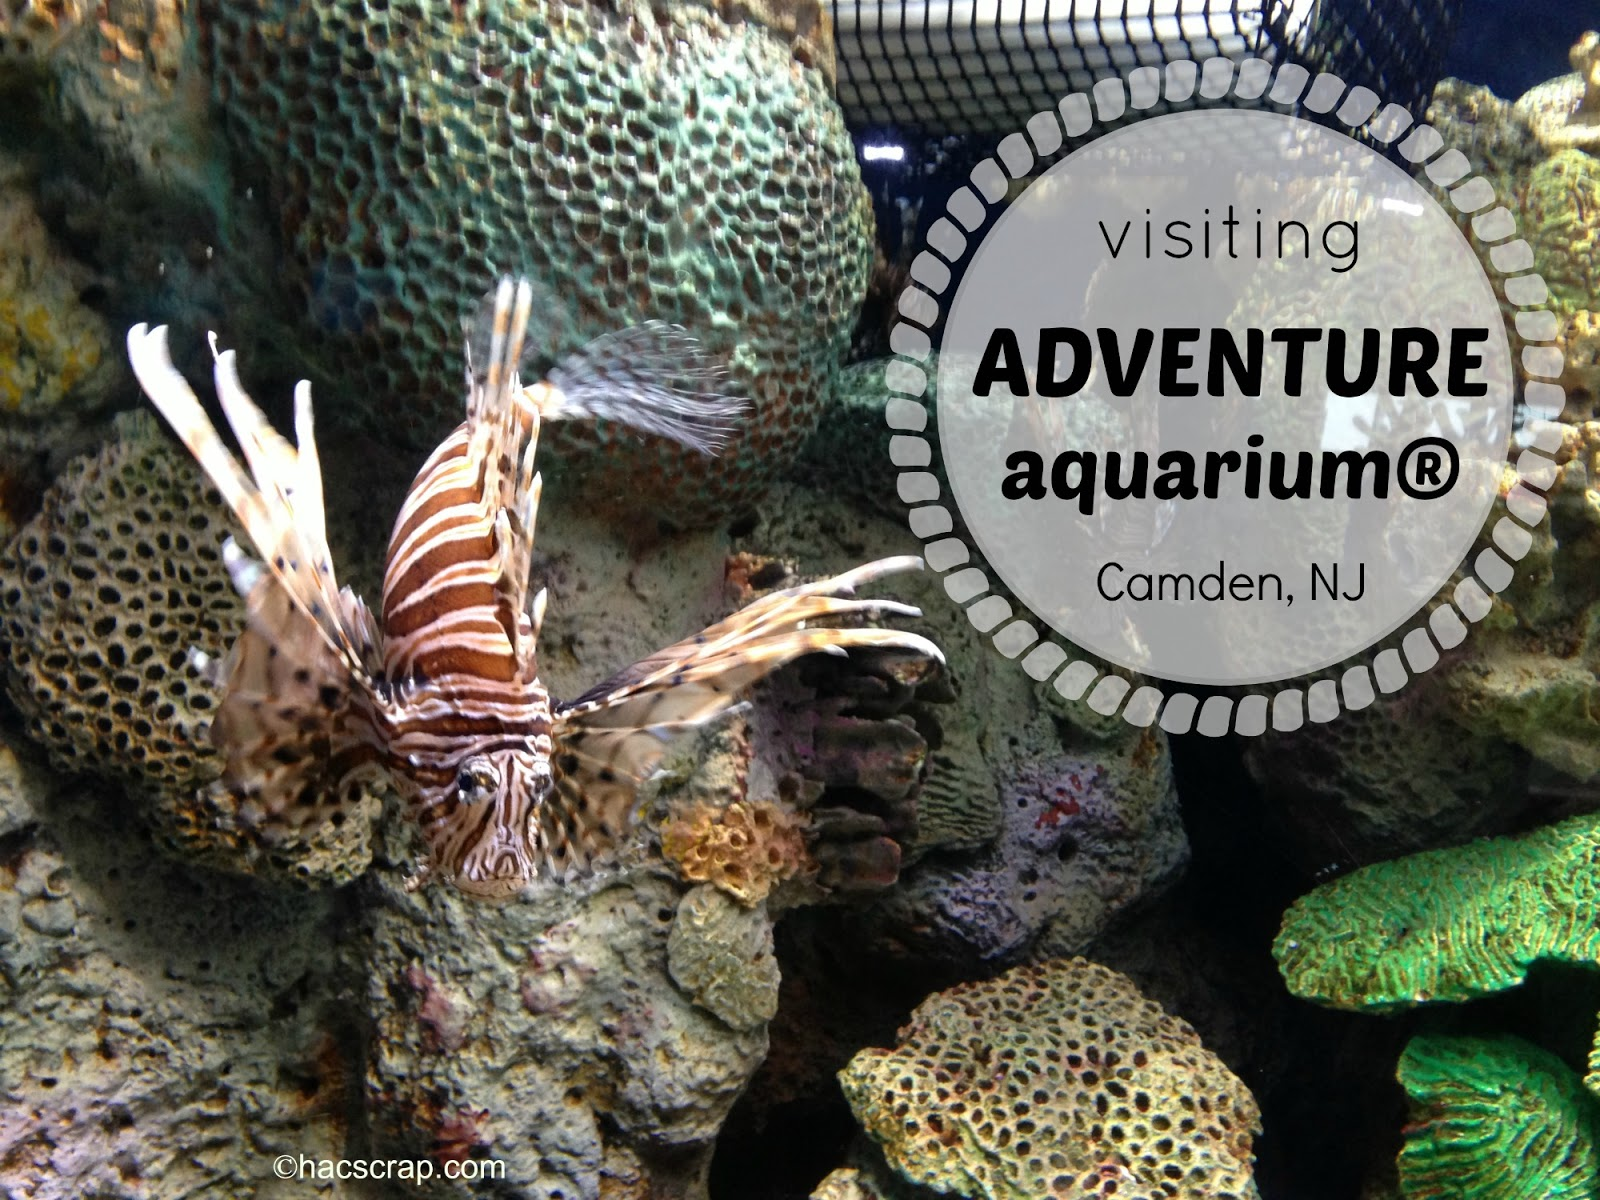 My Scraps Where To Go In Nj Adventure Aquarium In Camden Nj